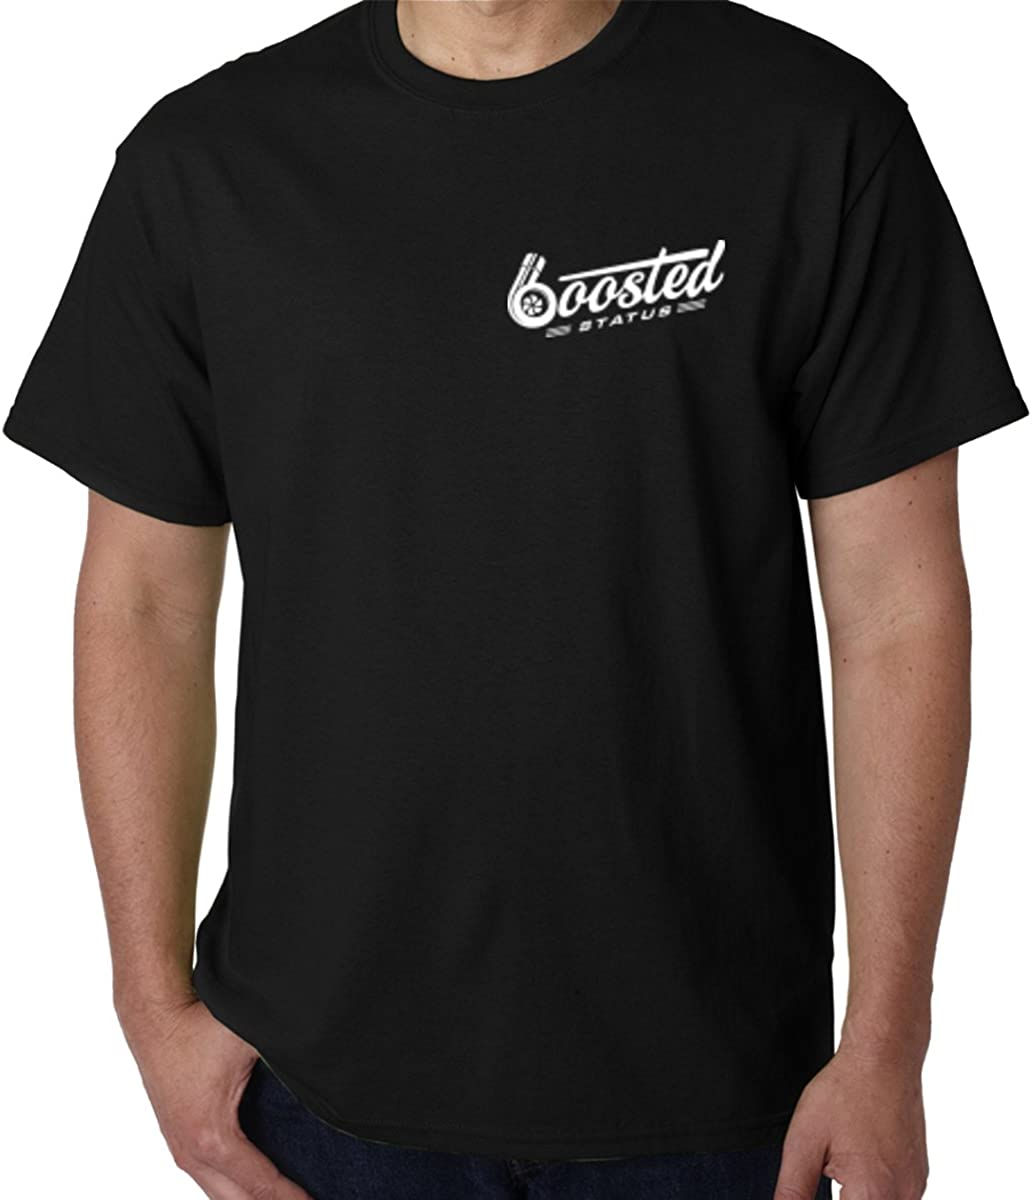 Black Boosted Status T-Shirt